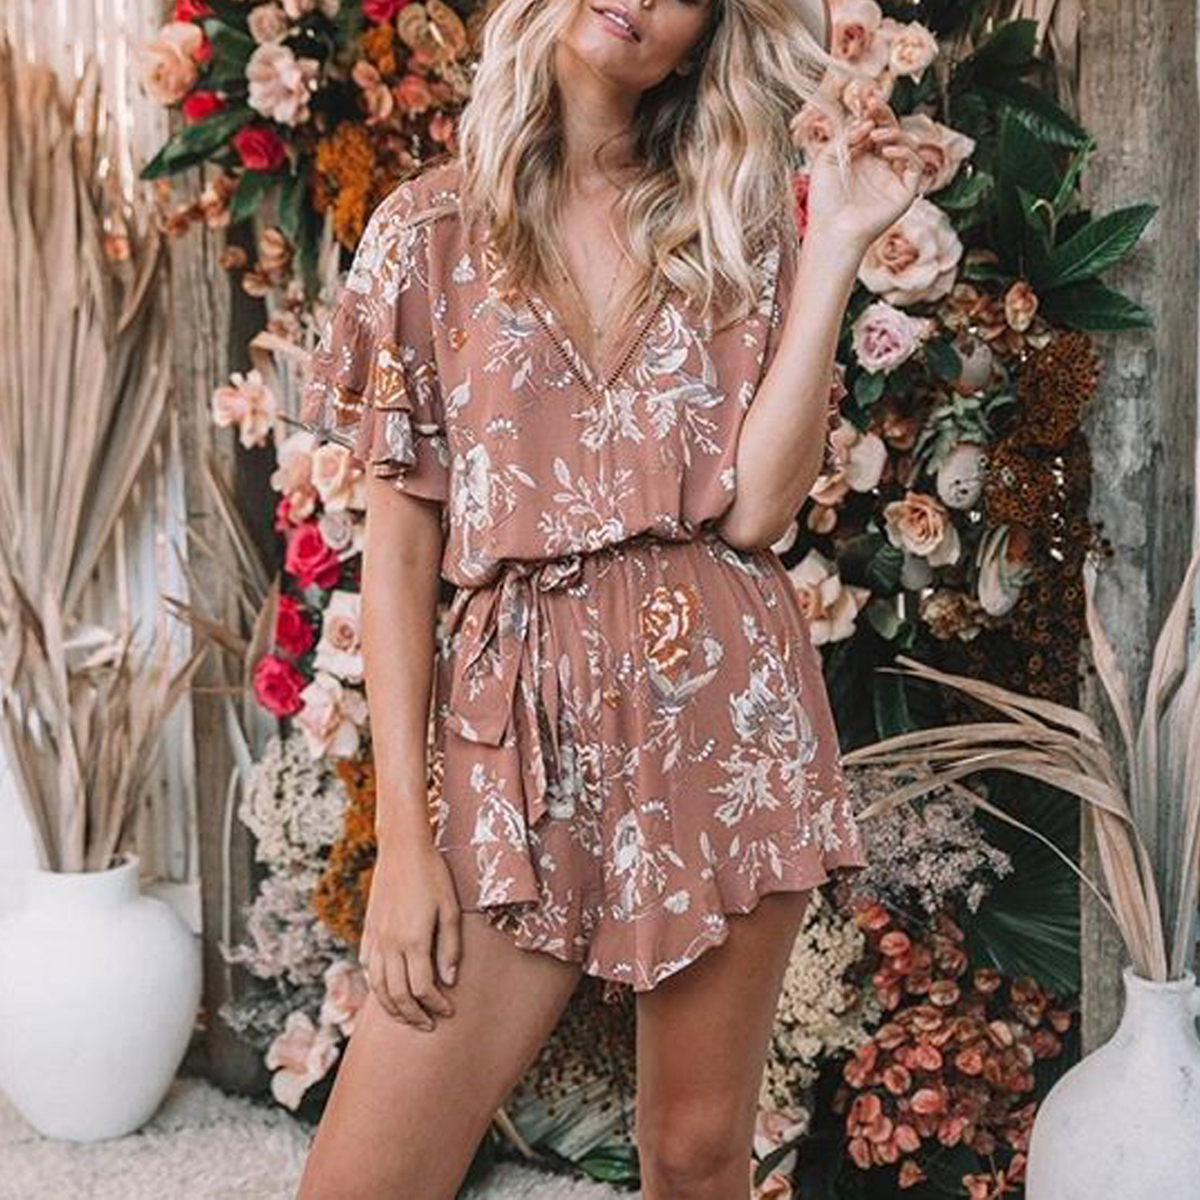 637b17fe1e1b Jastie Boho Patchwork Lace V-Neck Women Playsuit Gypsy Style Floral printed  Romper Casual Beach